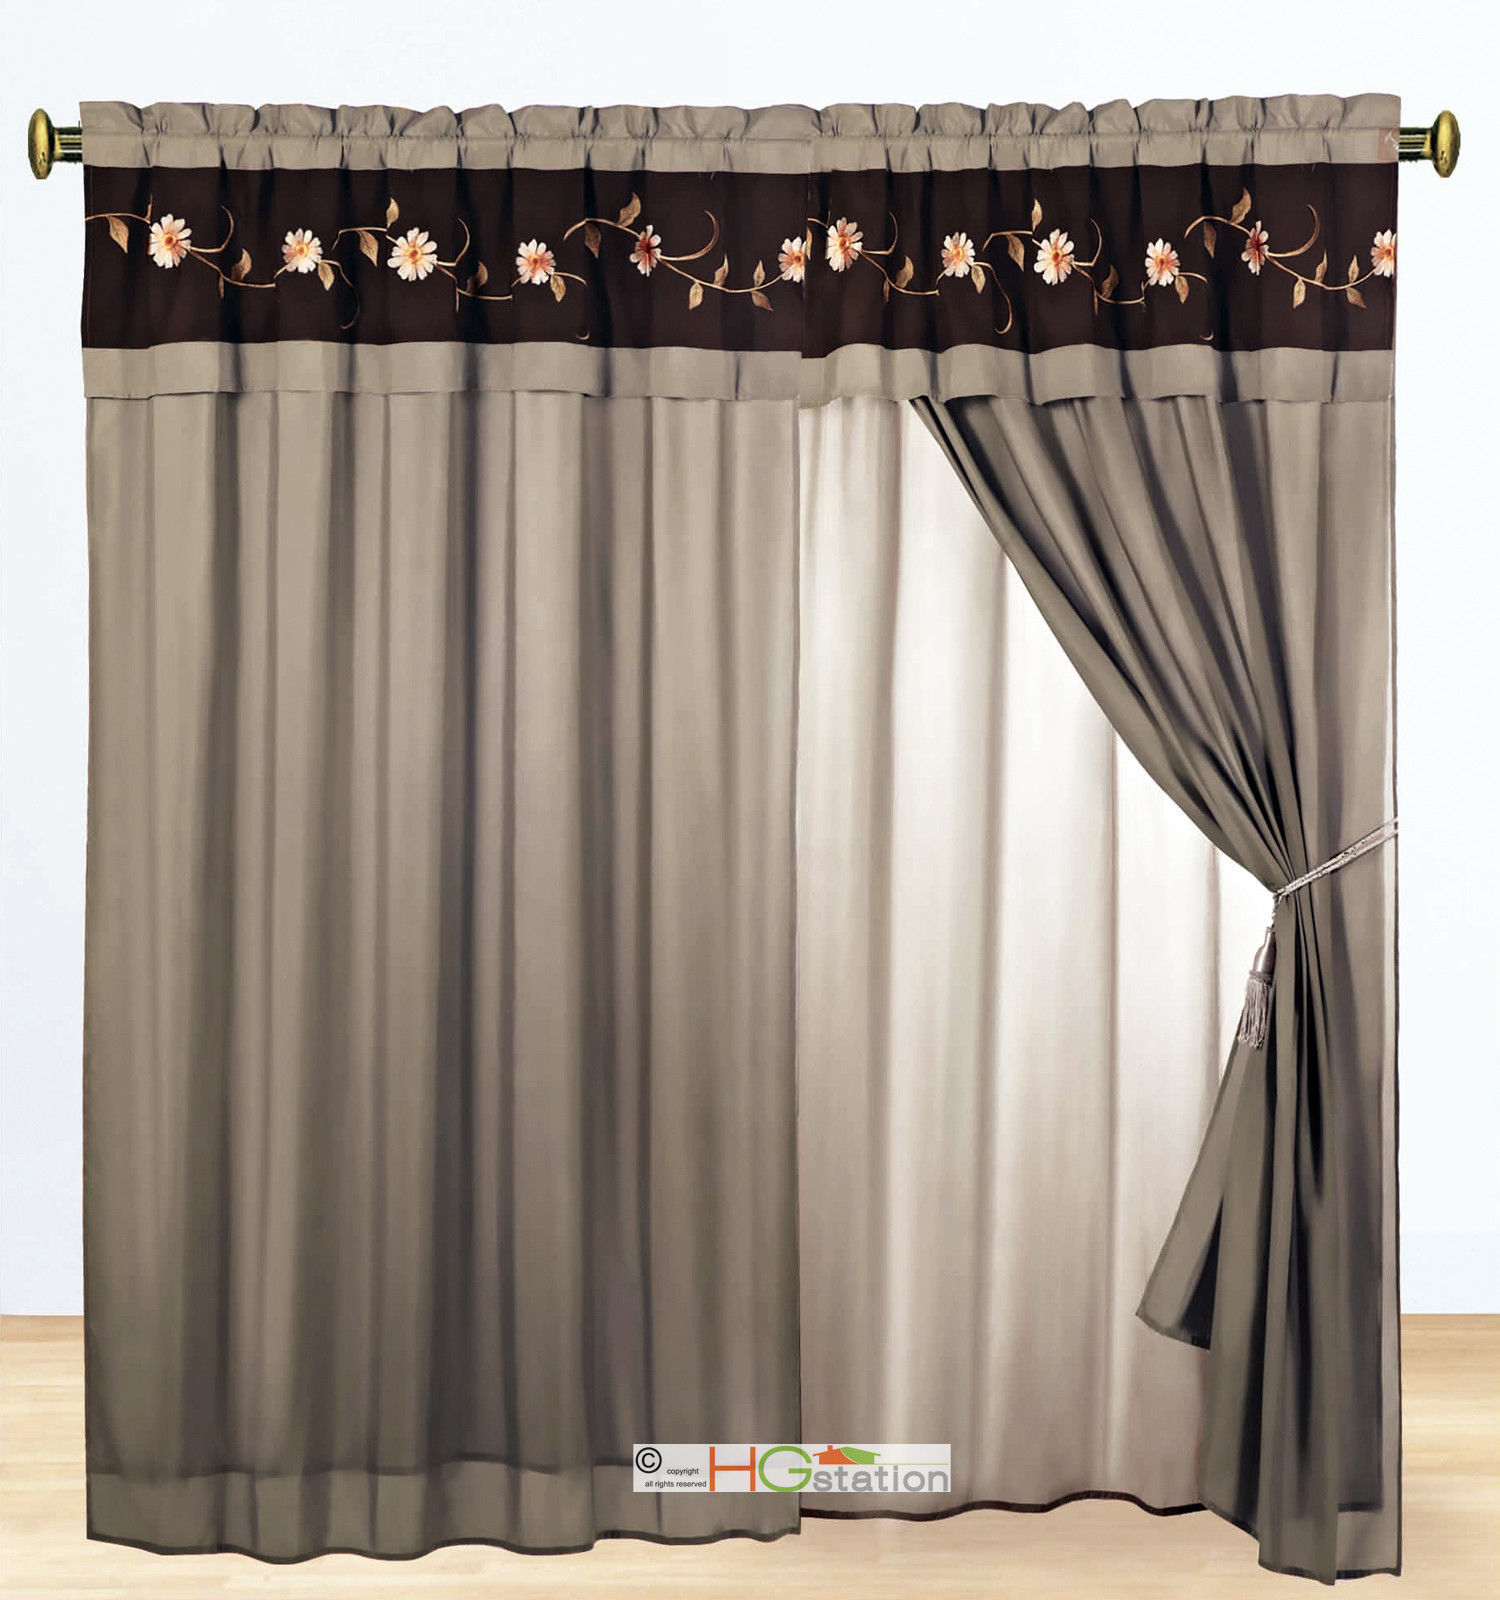 Primary image for 4-Pc Floral Scroll Vine Embroidery Curtain Set Taupe Khaki Brown Valance Liner